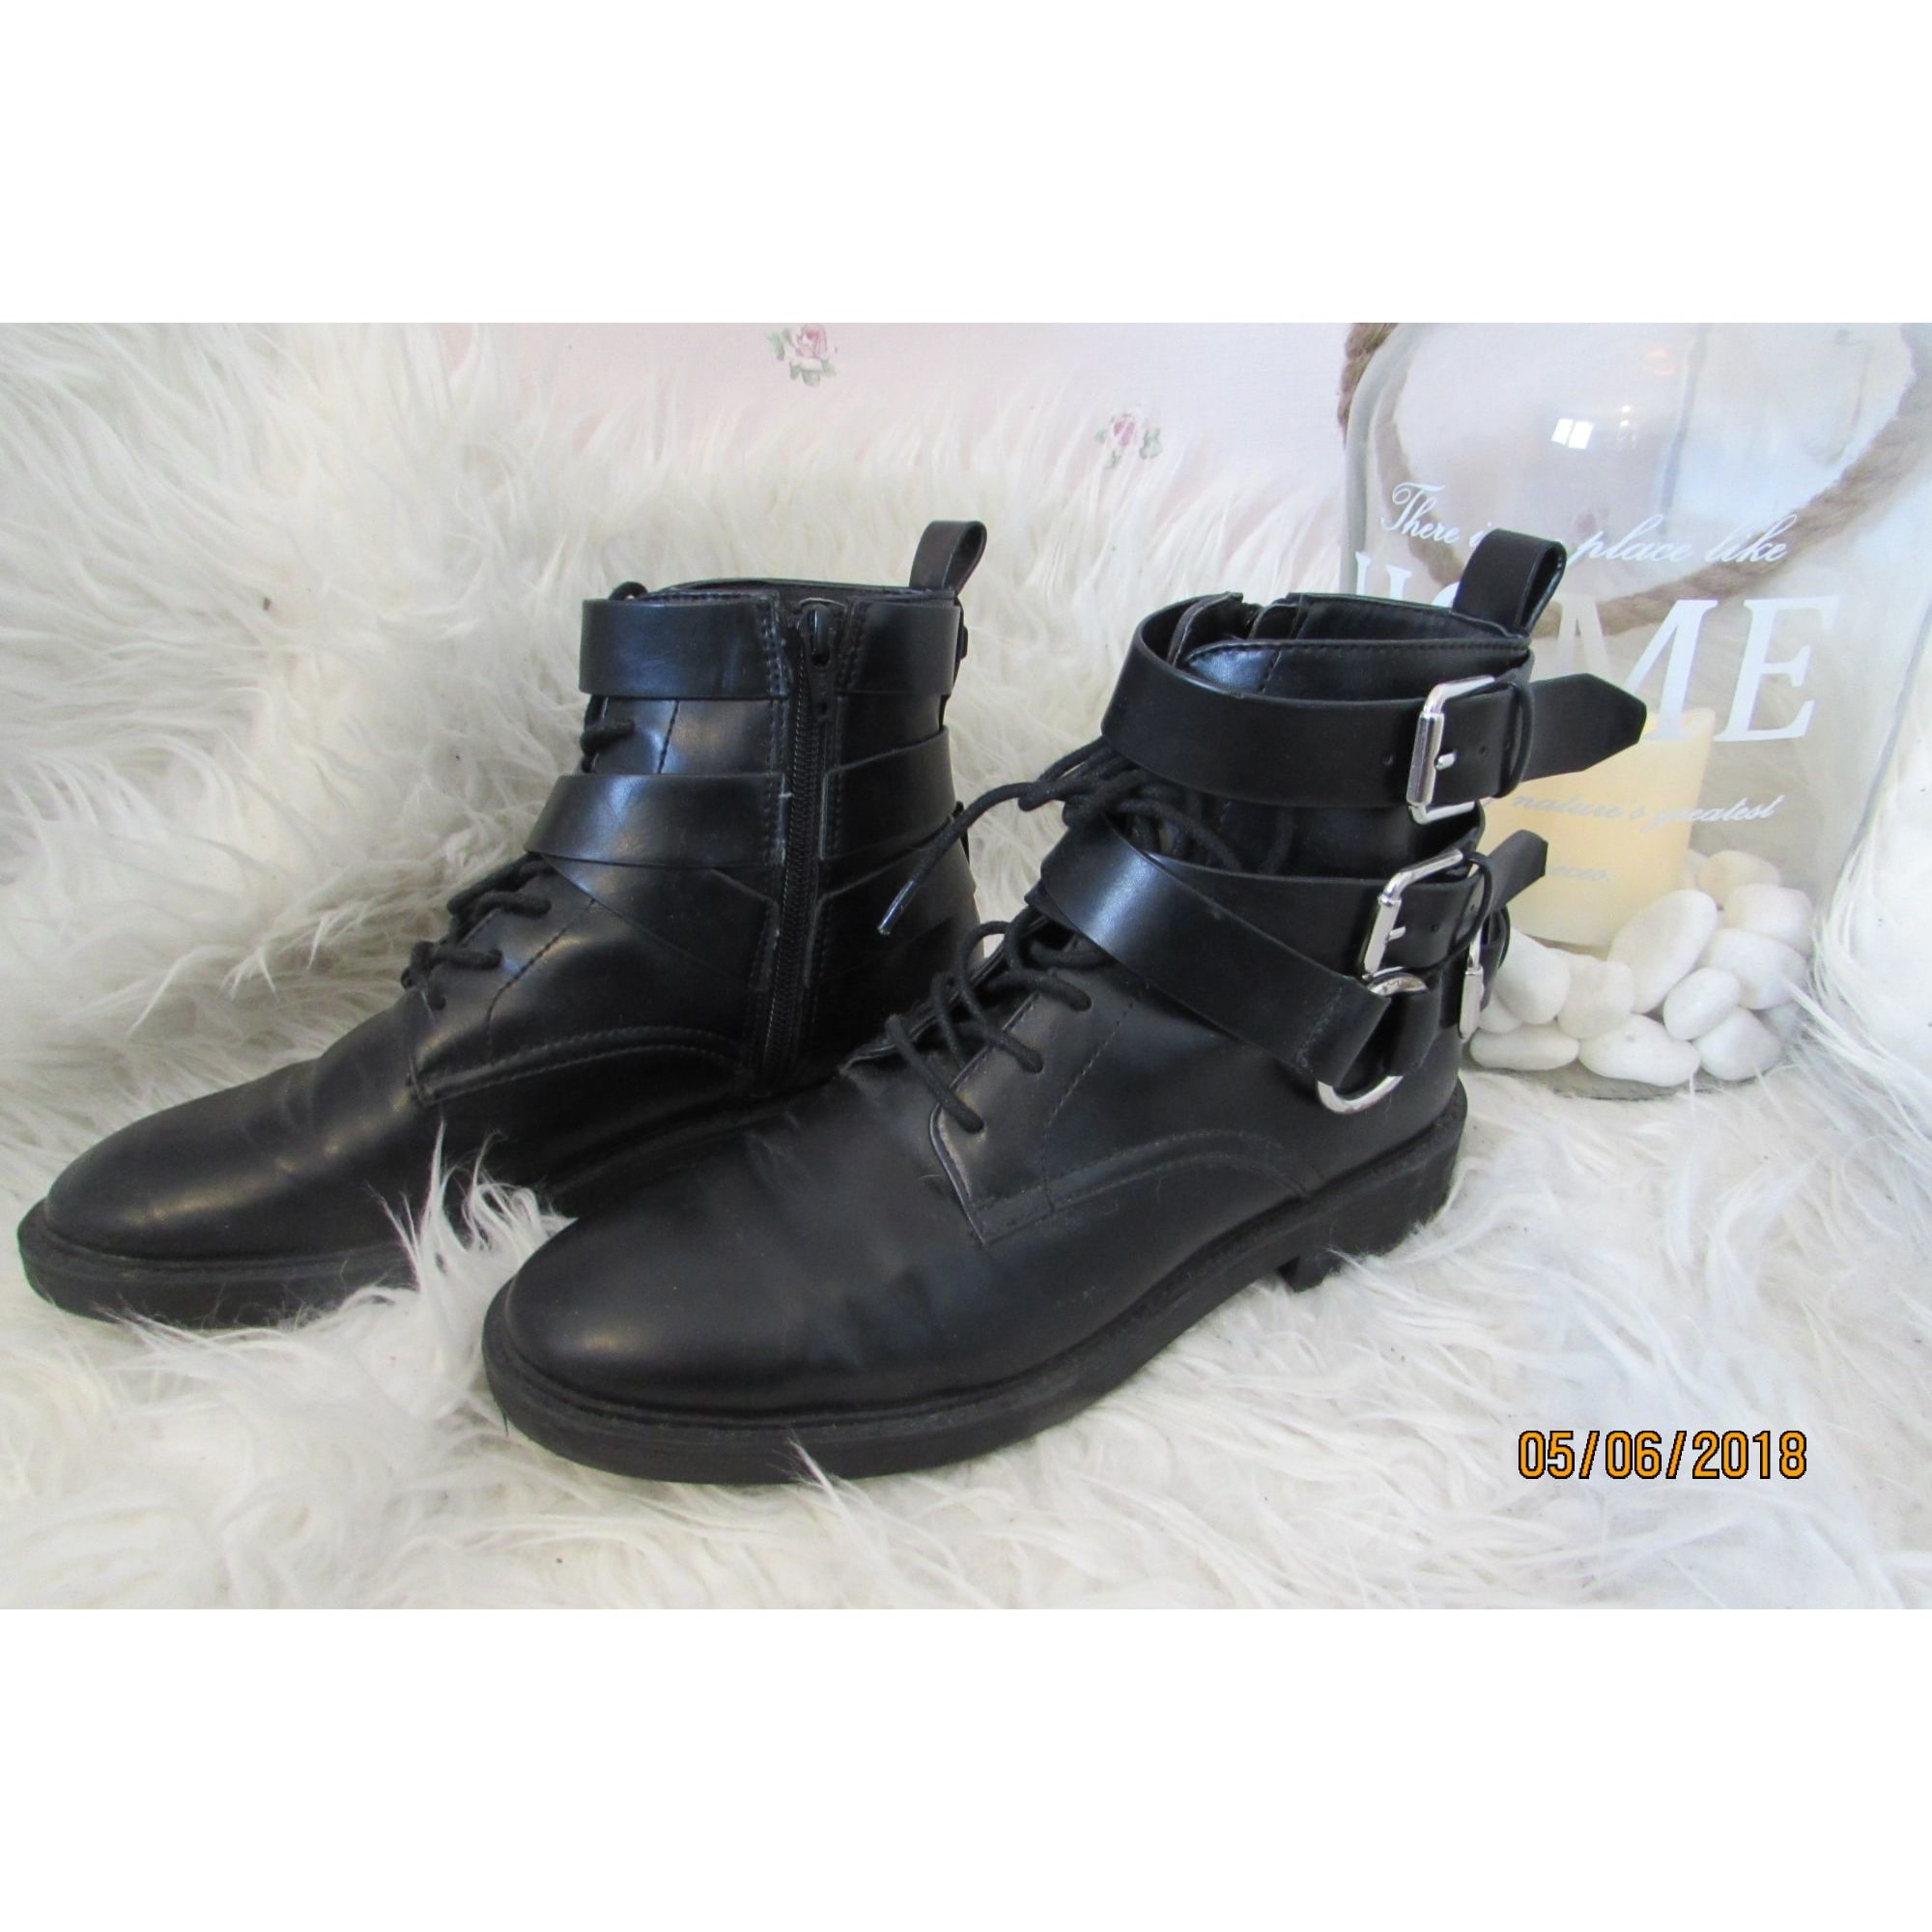 Boots Motards Noir Bottinesamp; 7909768 38 Low Stradivarius 8Ony0vmNw